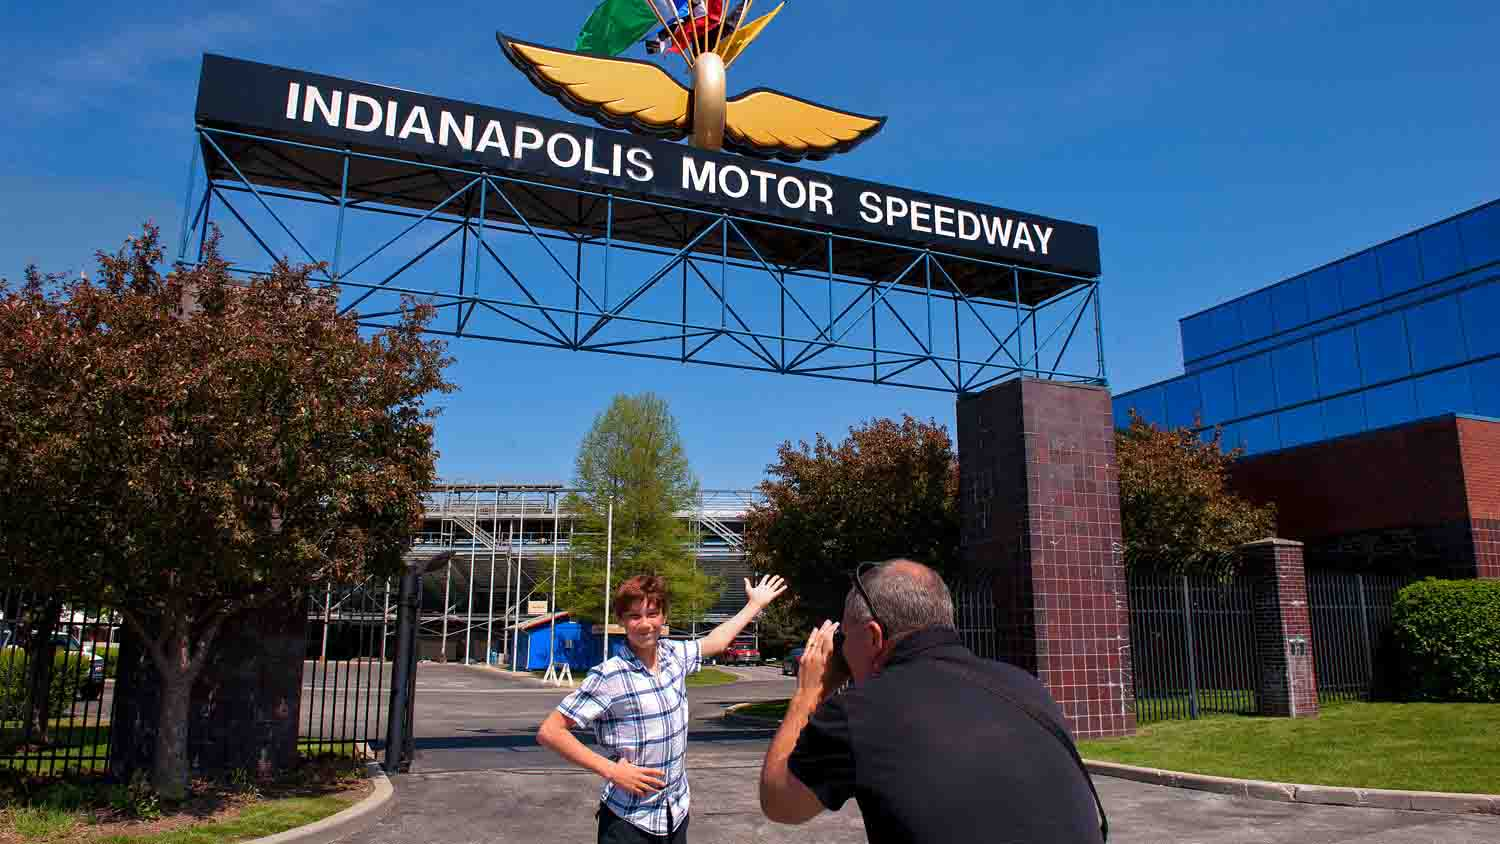 Indianapolis Motor Speedway Hall of Fame Museum 5